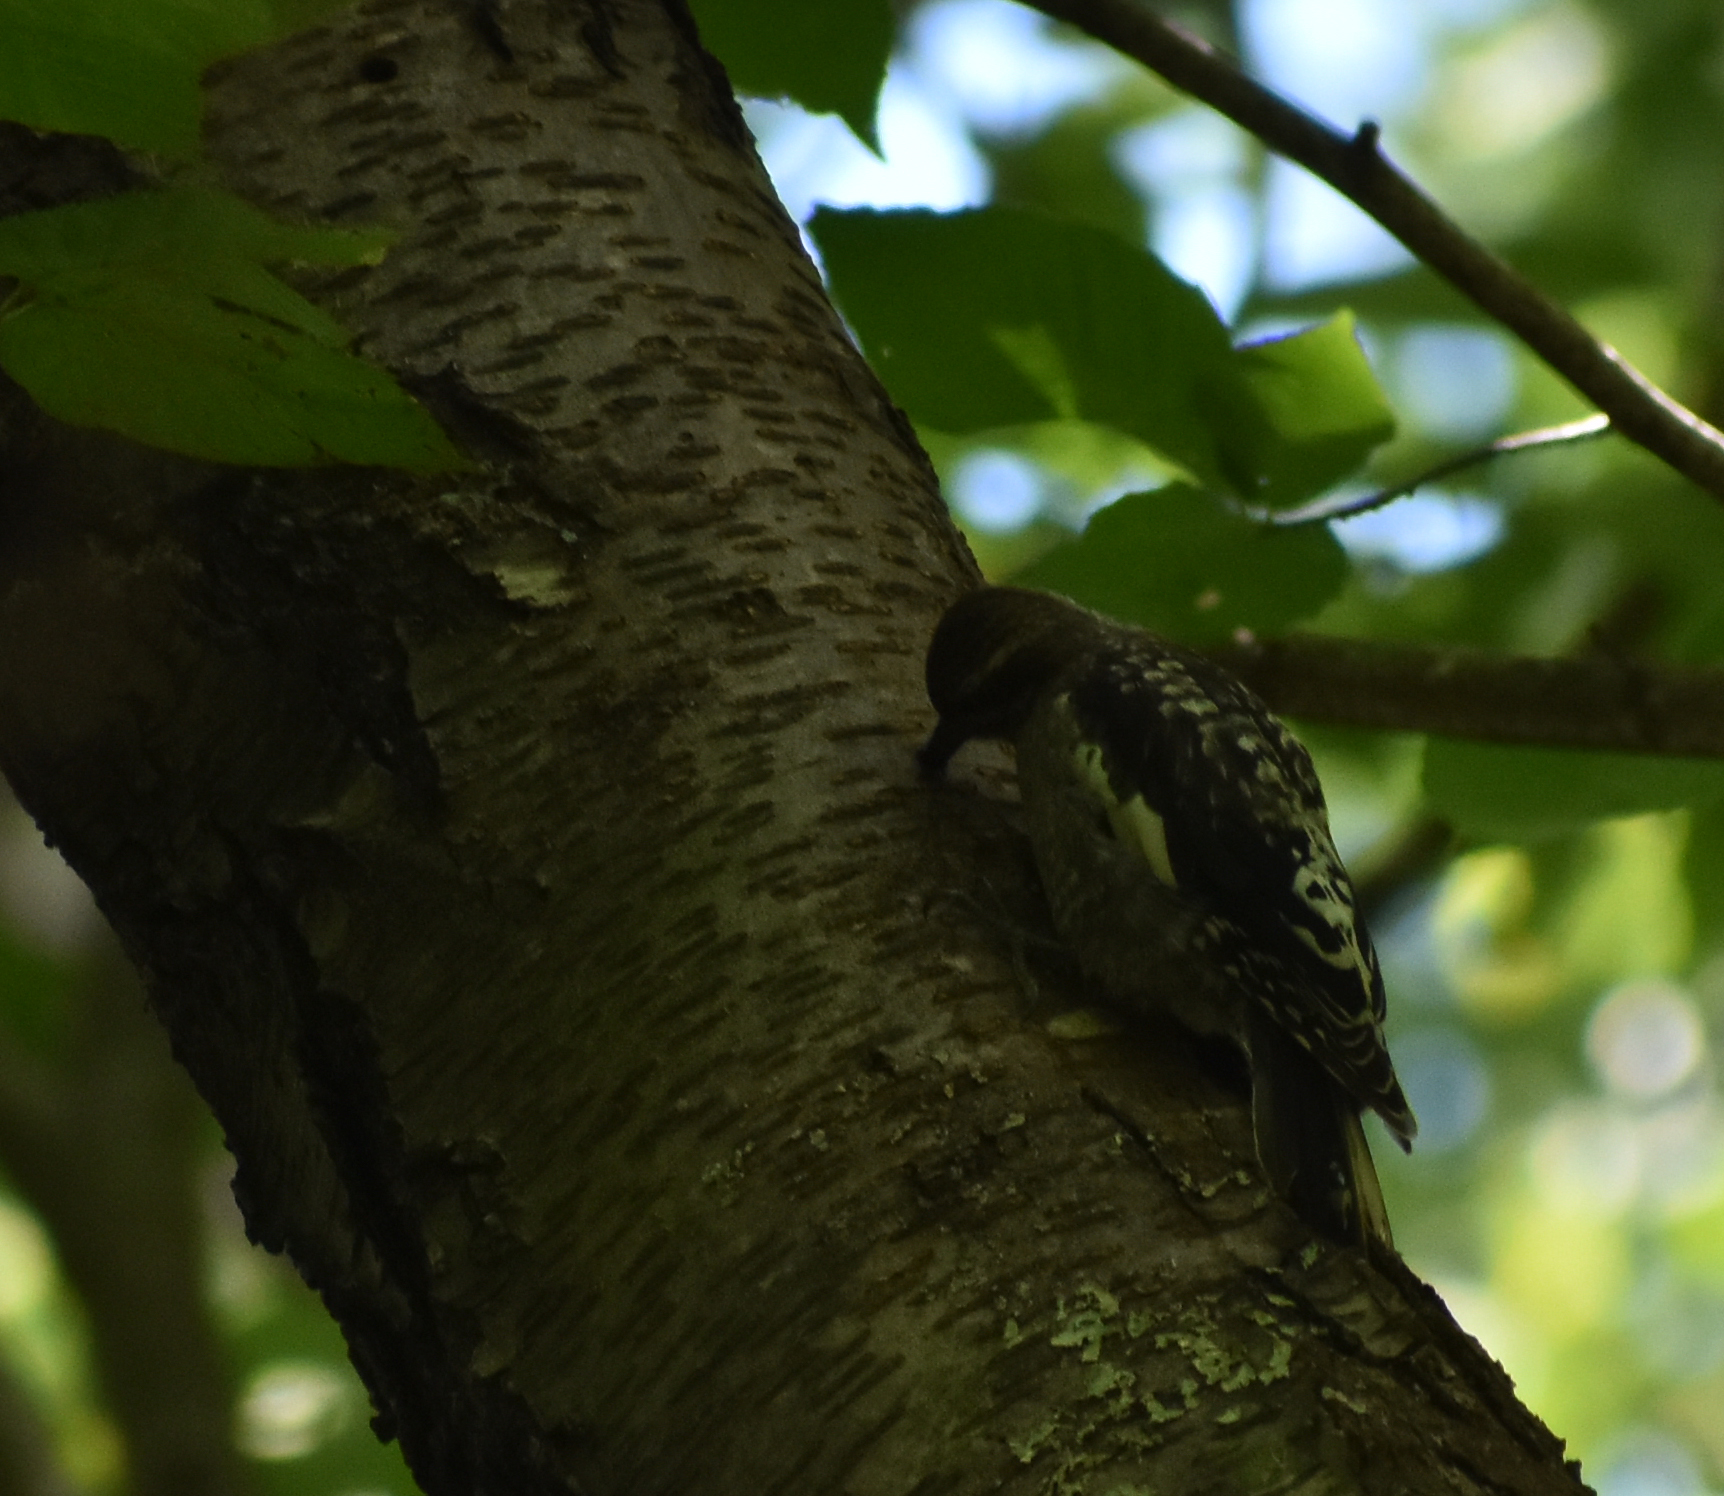 Yellow-Bellied Sapsucker drilling into Sweet Birch